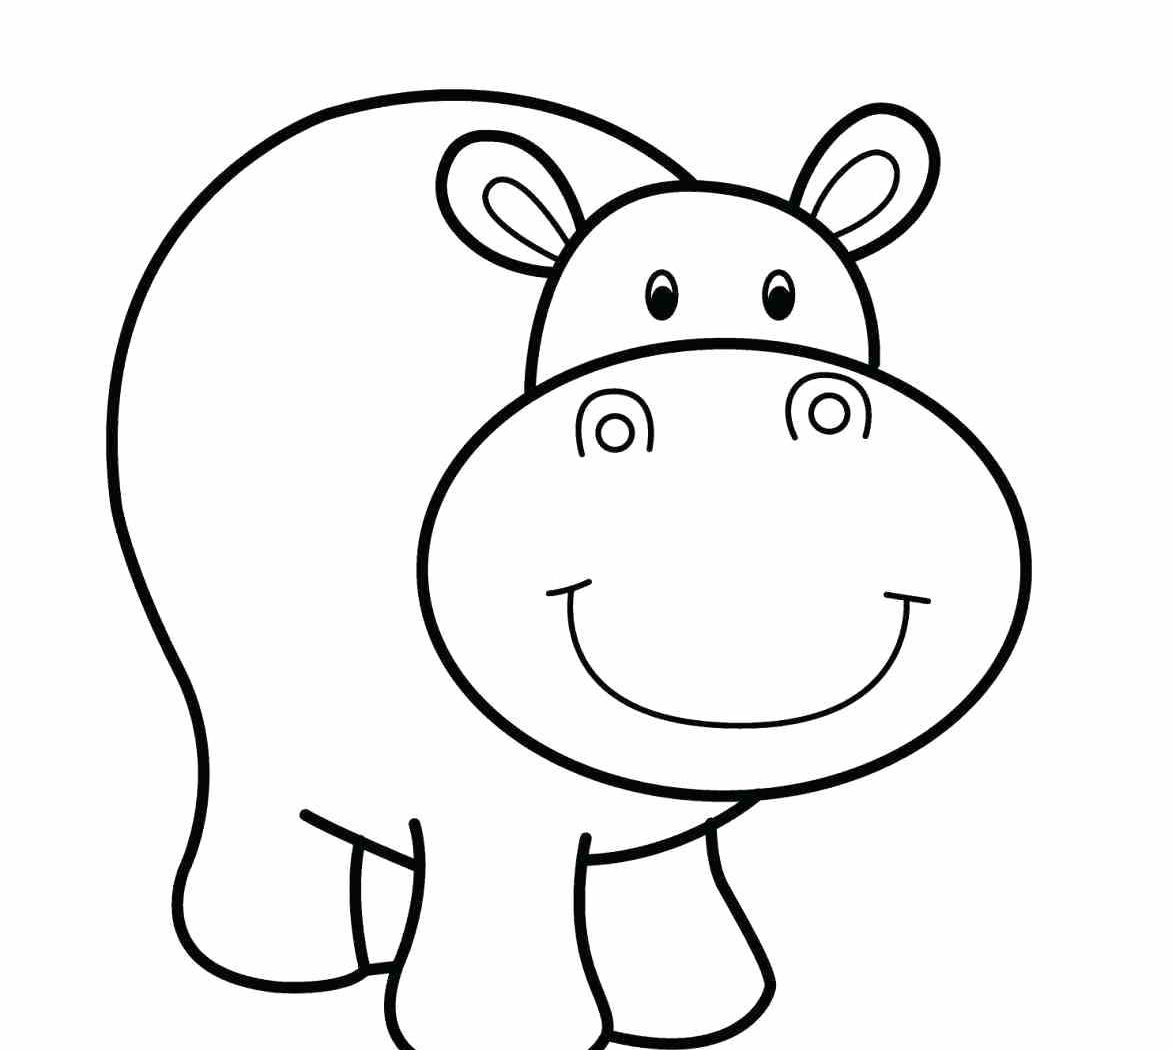 coloring hippo clipart free hippo coloring pages coloring hippo clipart